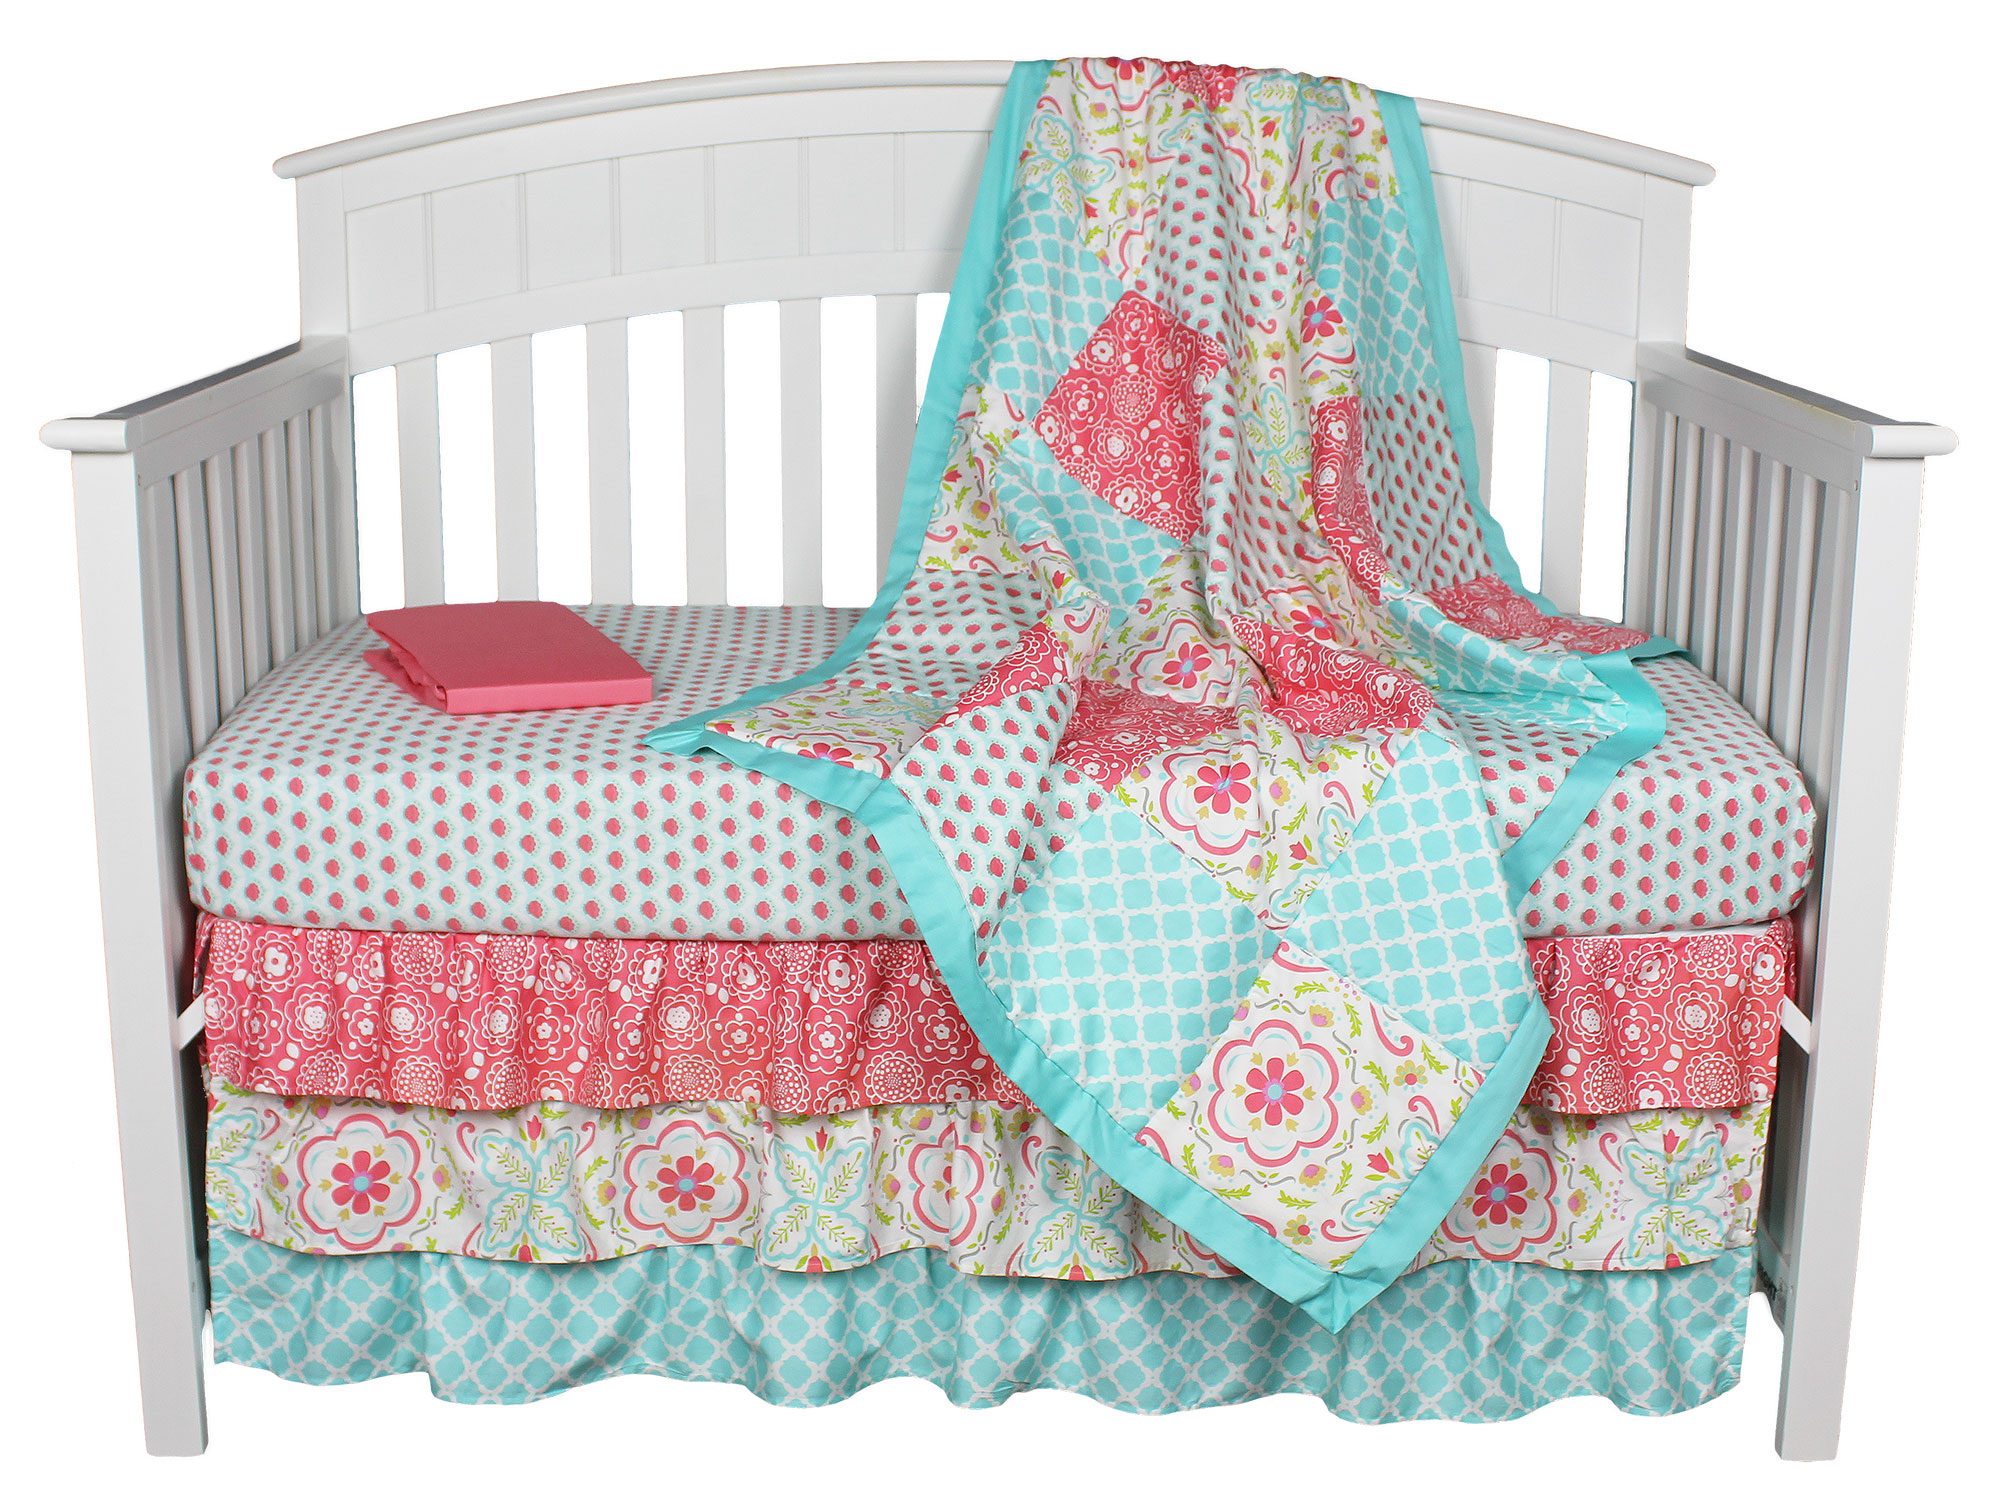 Teal Coral Bedding Bedroom Teal And Coral Chevron Bedding